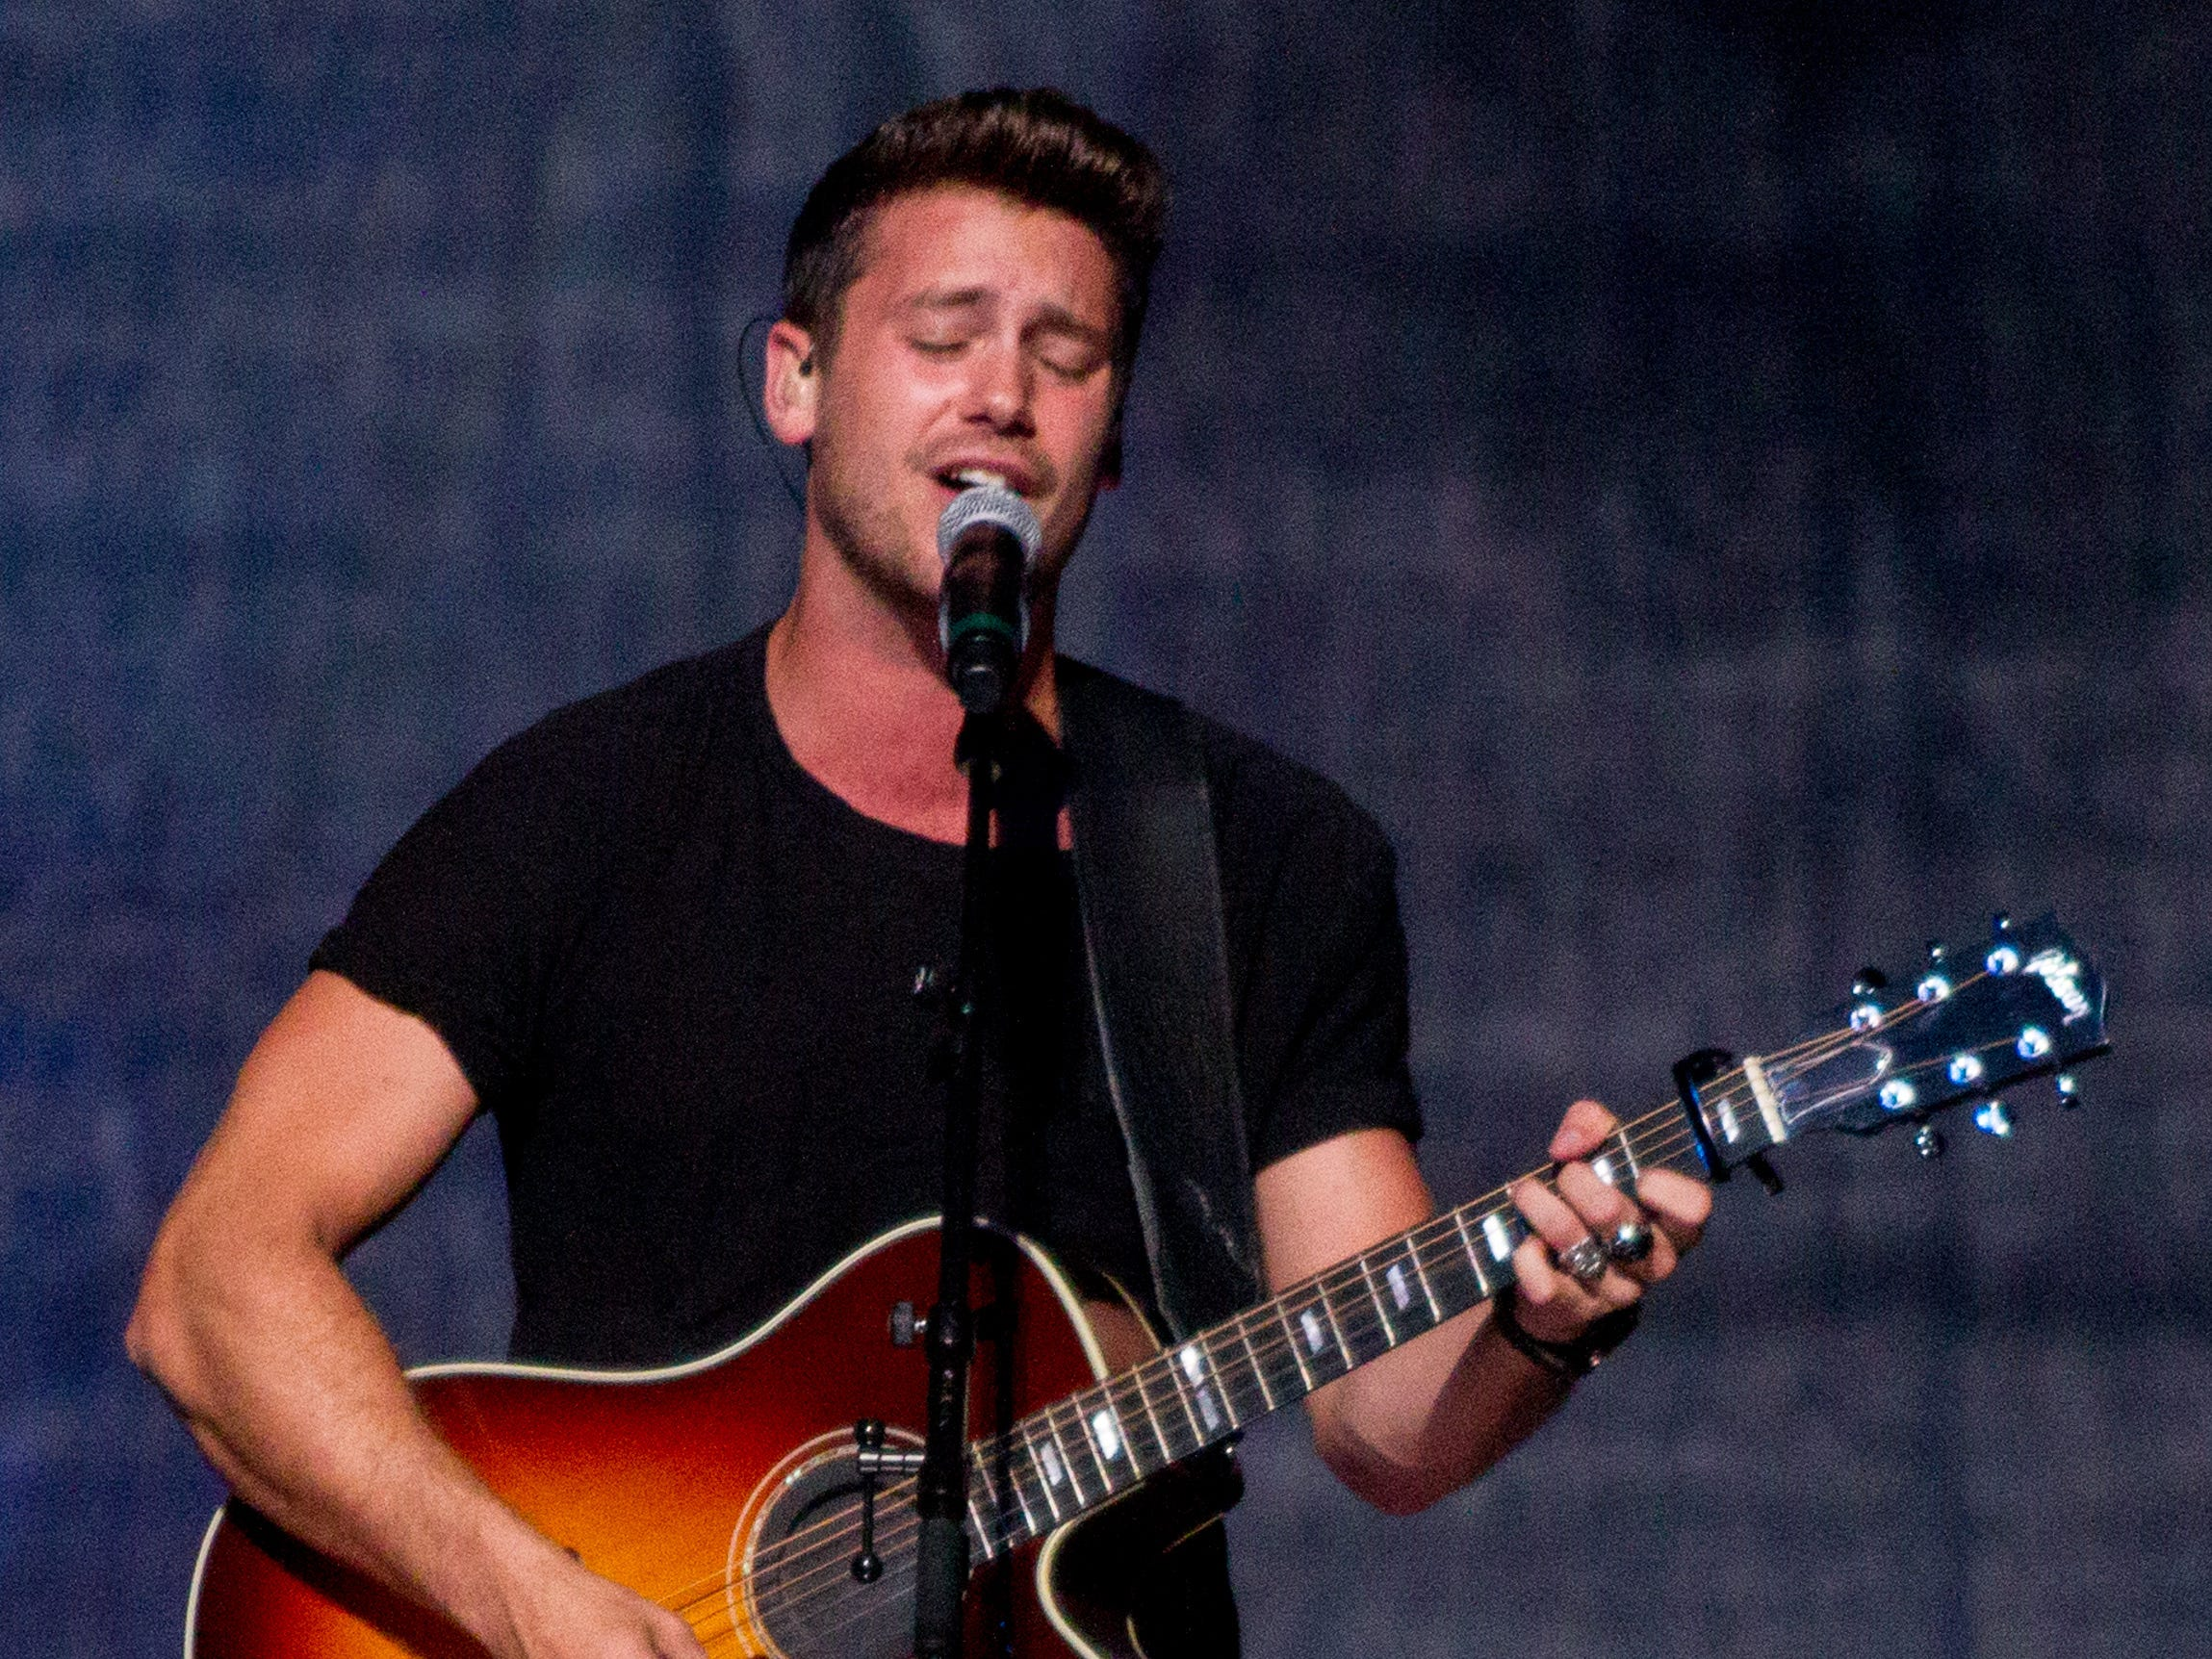 Bastian Baker performs on July 30, 2018, while opening for Shania Twain at Talking Stick Resort Arena in Phoenix, Arizona.